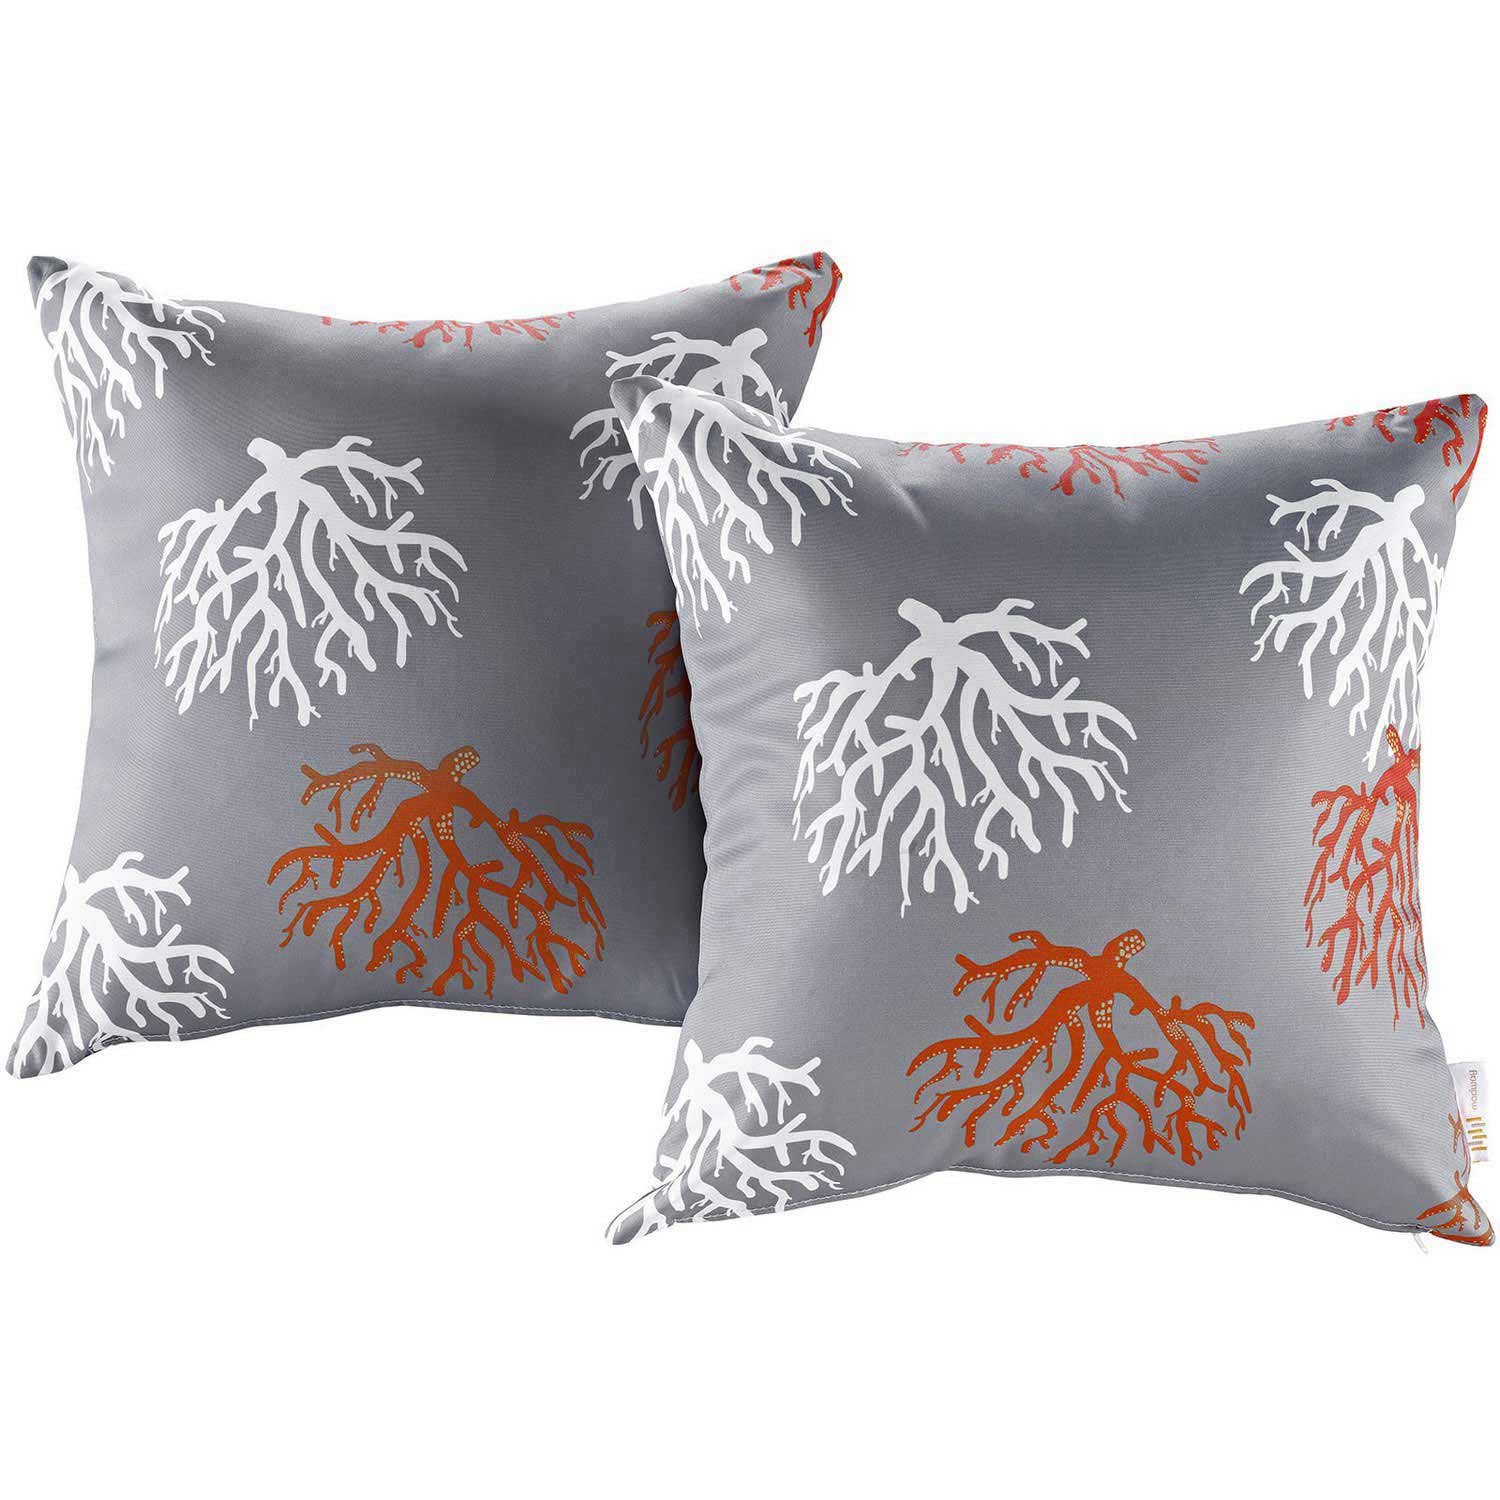 Modway Modway Two Piece Outdoor Patio Pillow Set - Orchard